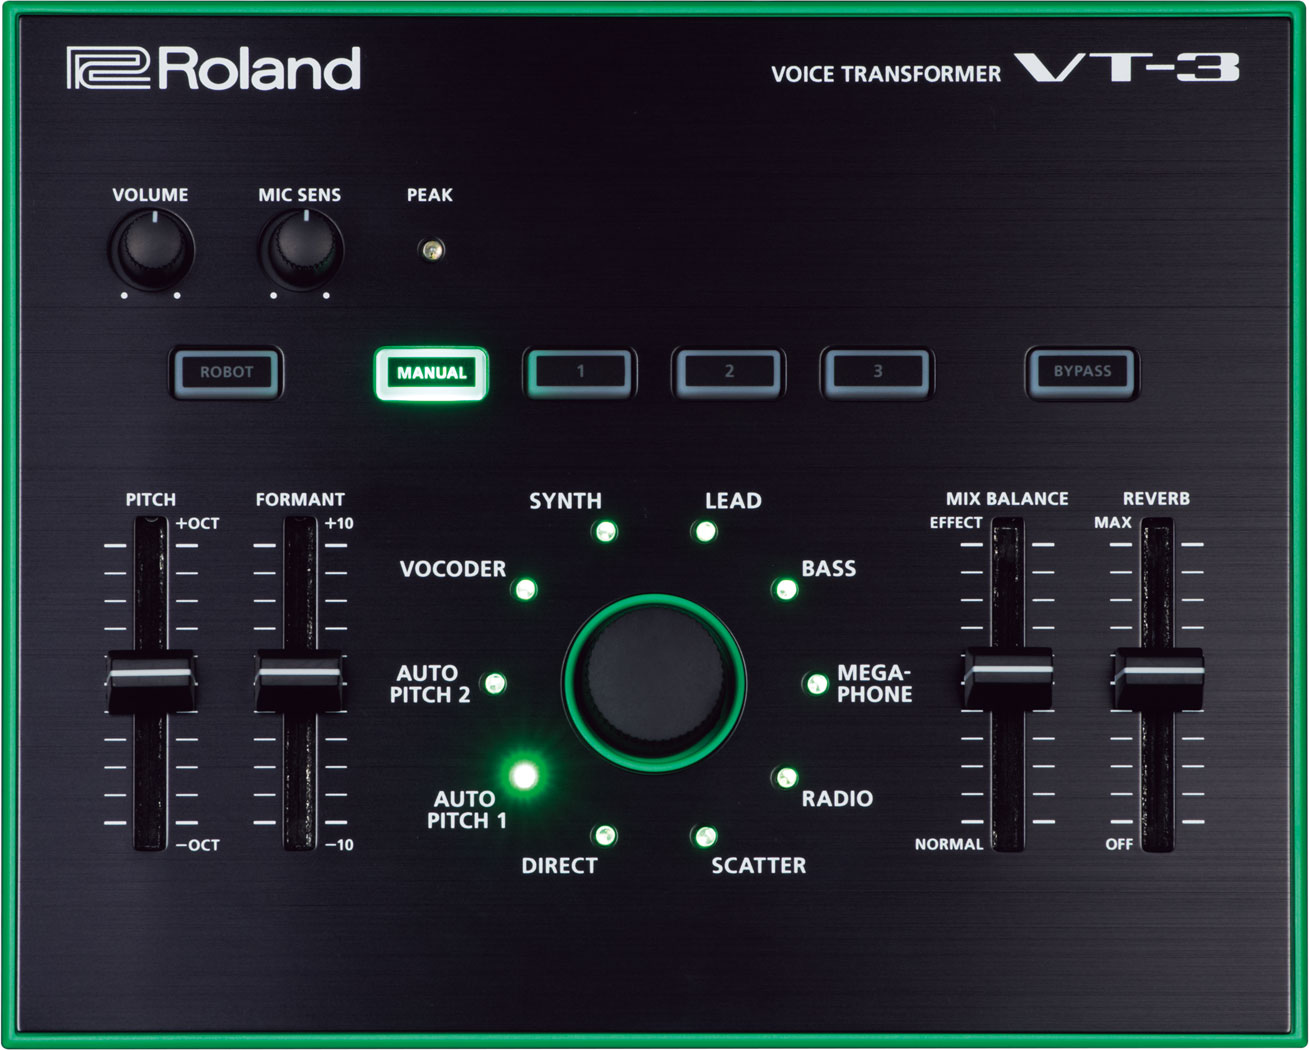 Roland Vt 3 Voice Transformer Picture Of The 2 Channel Led Color Organ Circuit